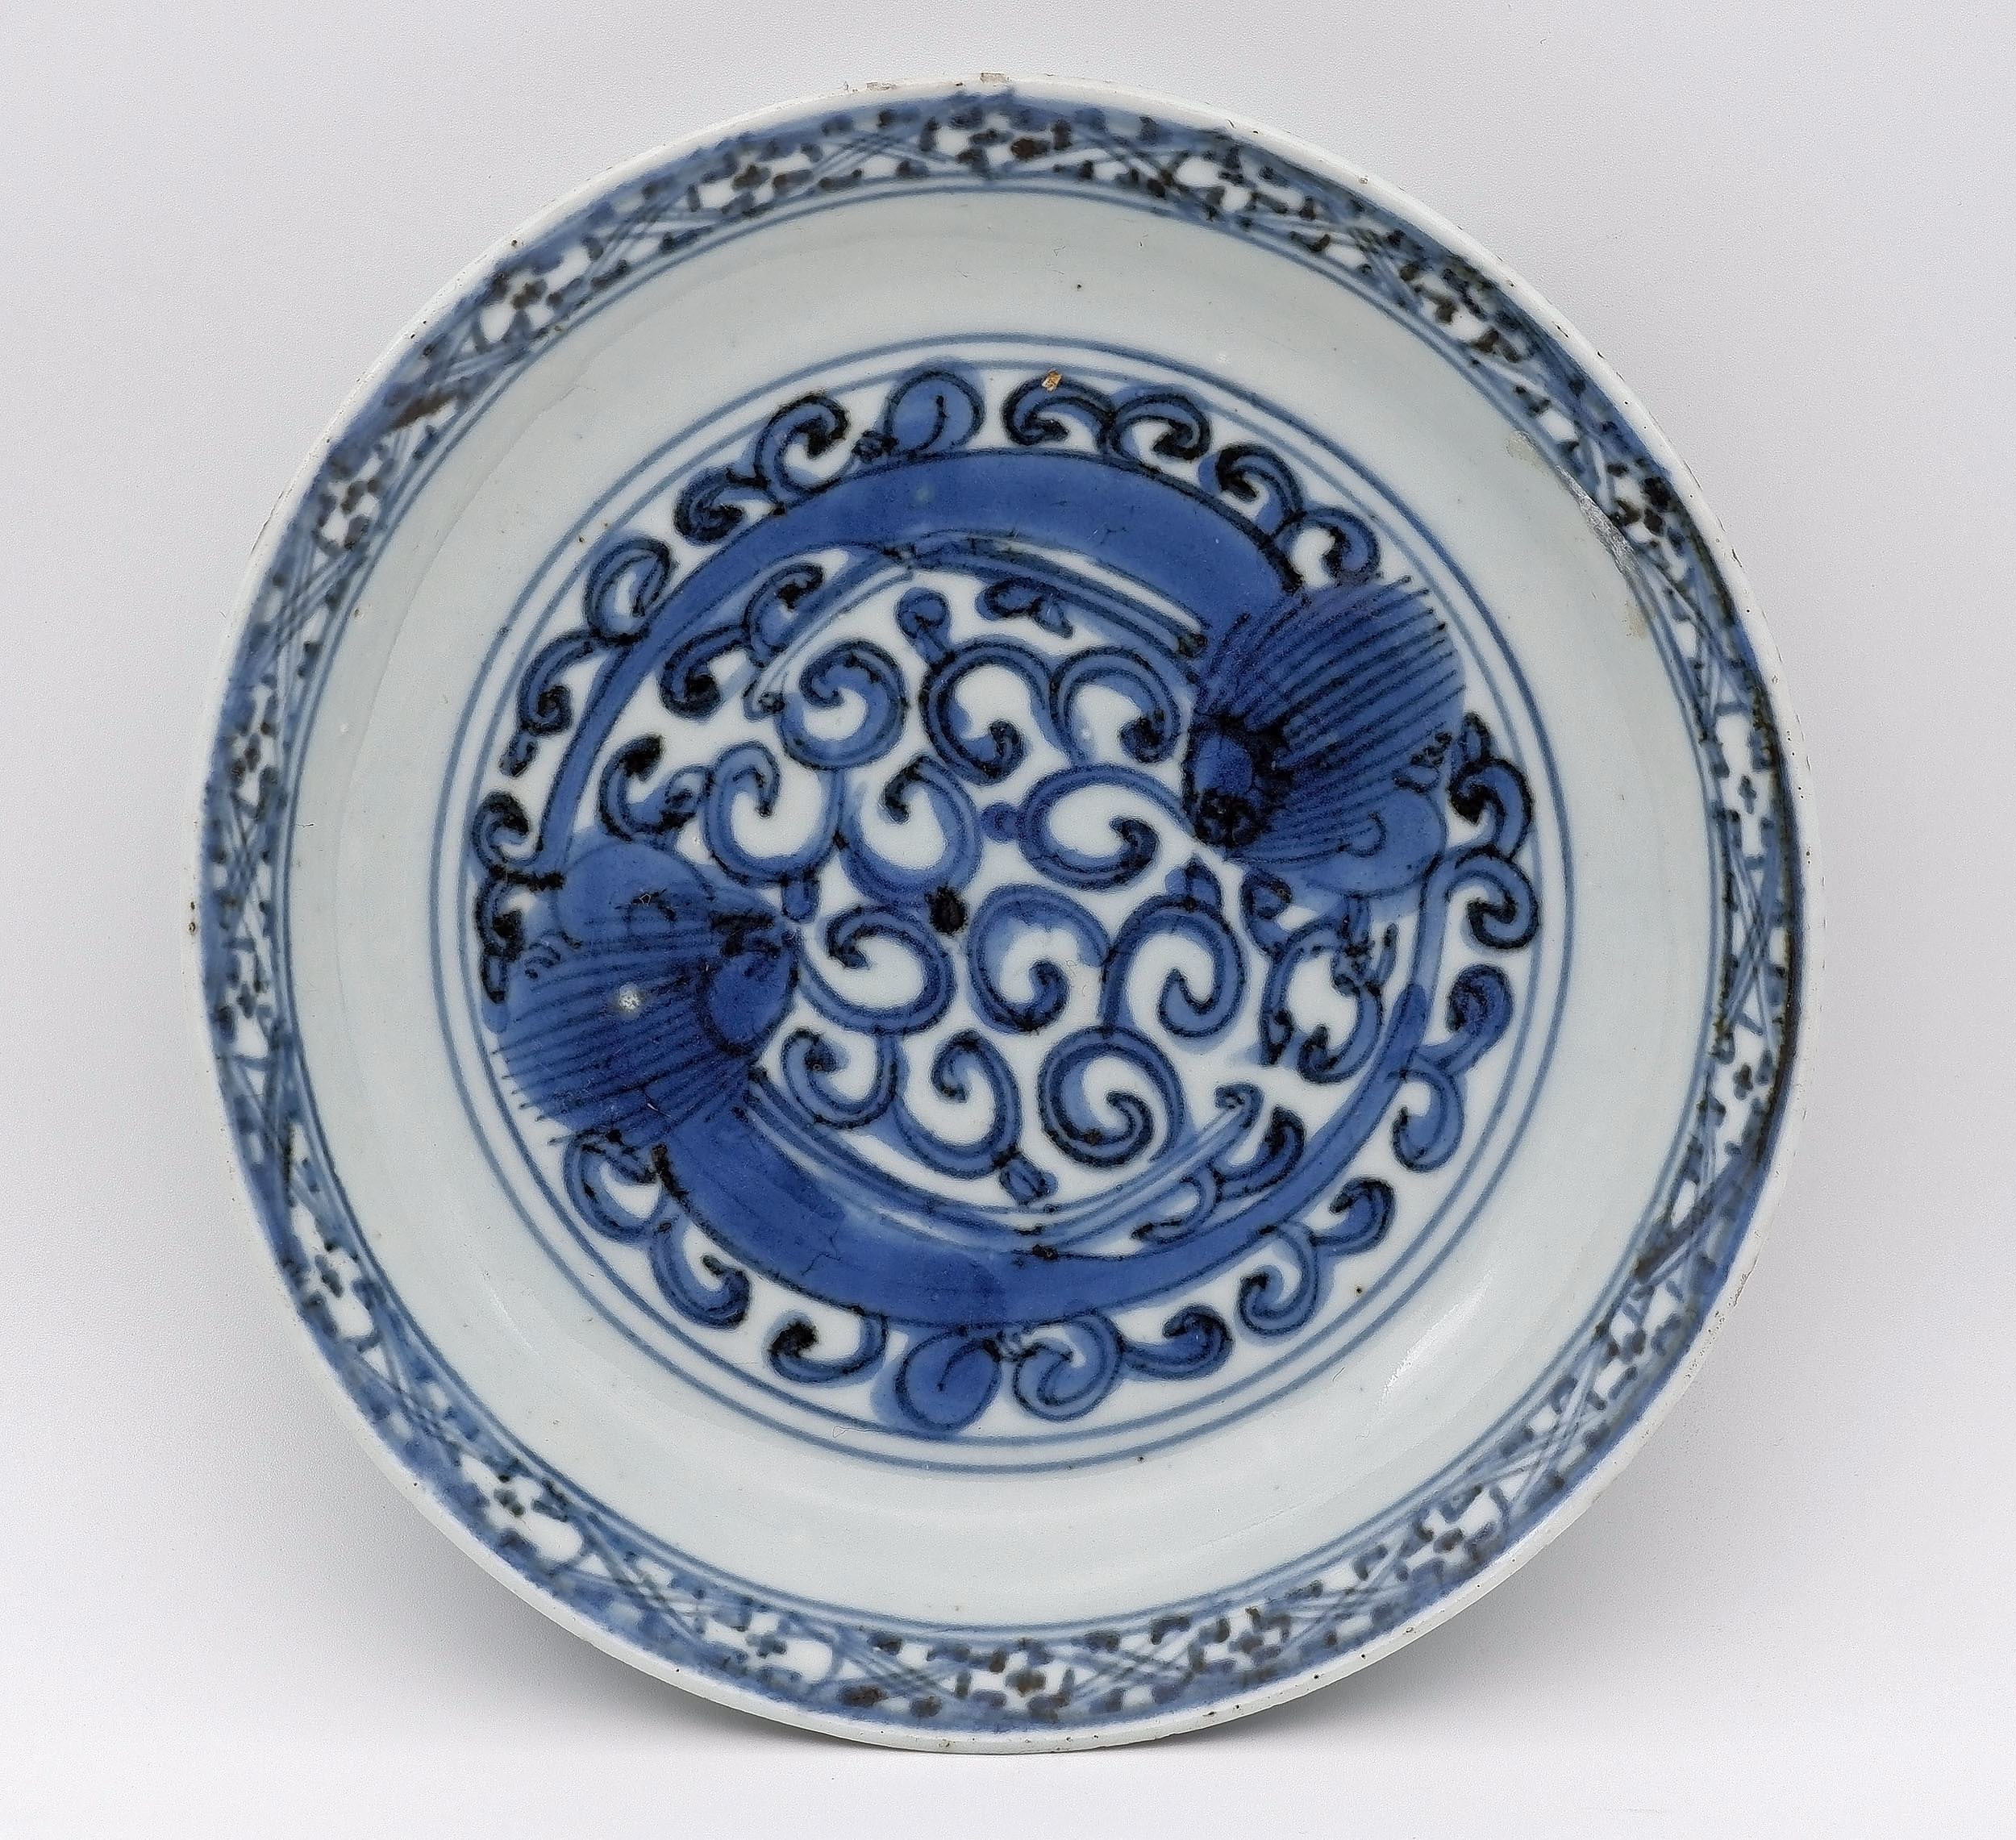 'Chinese Late Ming Blue and White Dragon Dish, 16th Century'